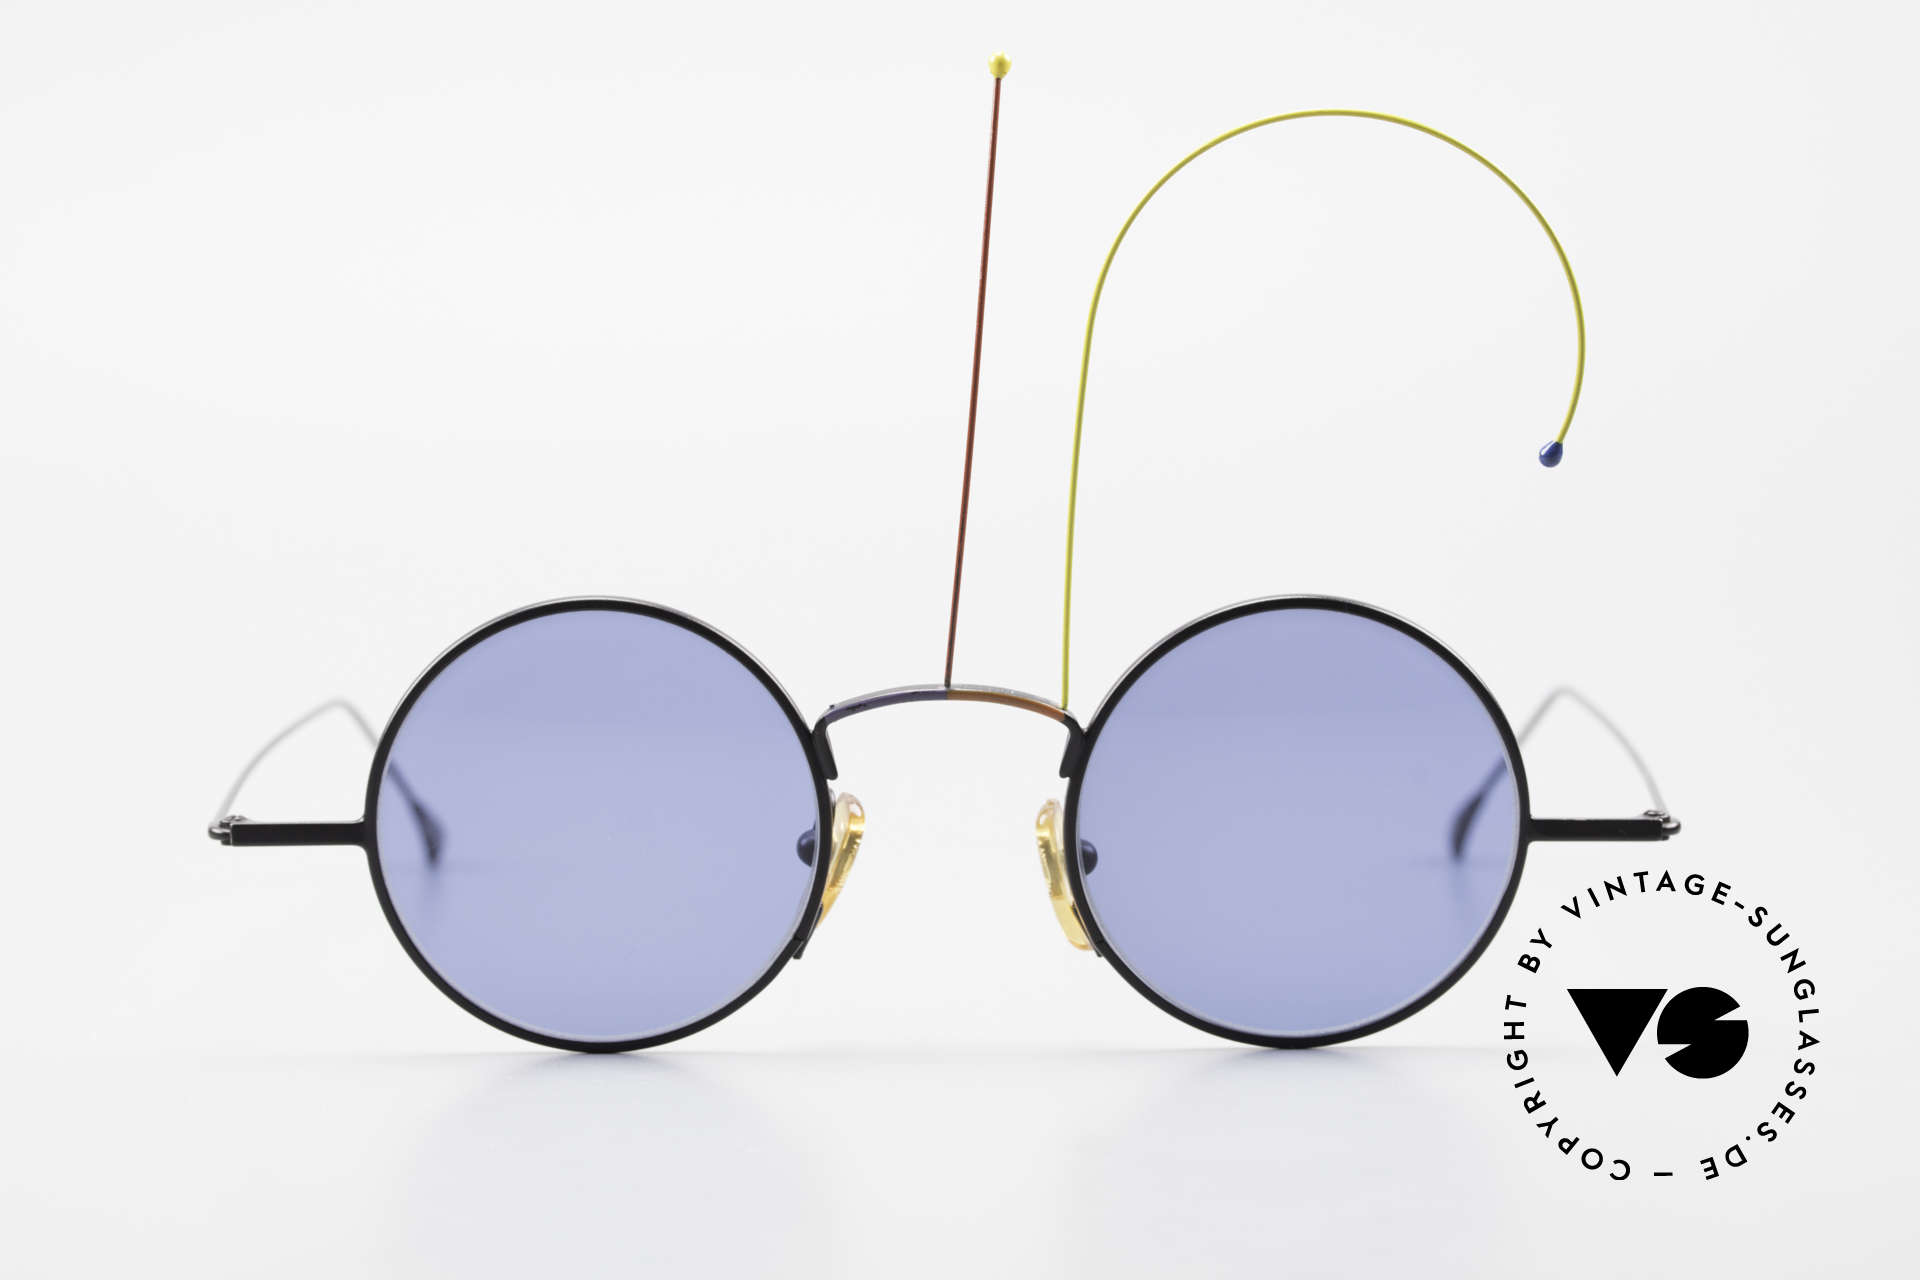 Casanova Arché 3 Limited Art Sunglasses 80's, distinctive Venetian design in style of the 18th century, Made for Men and Women